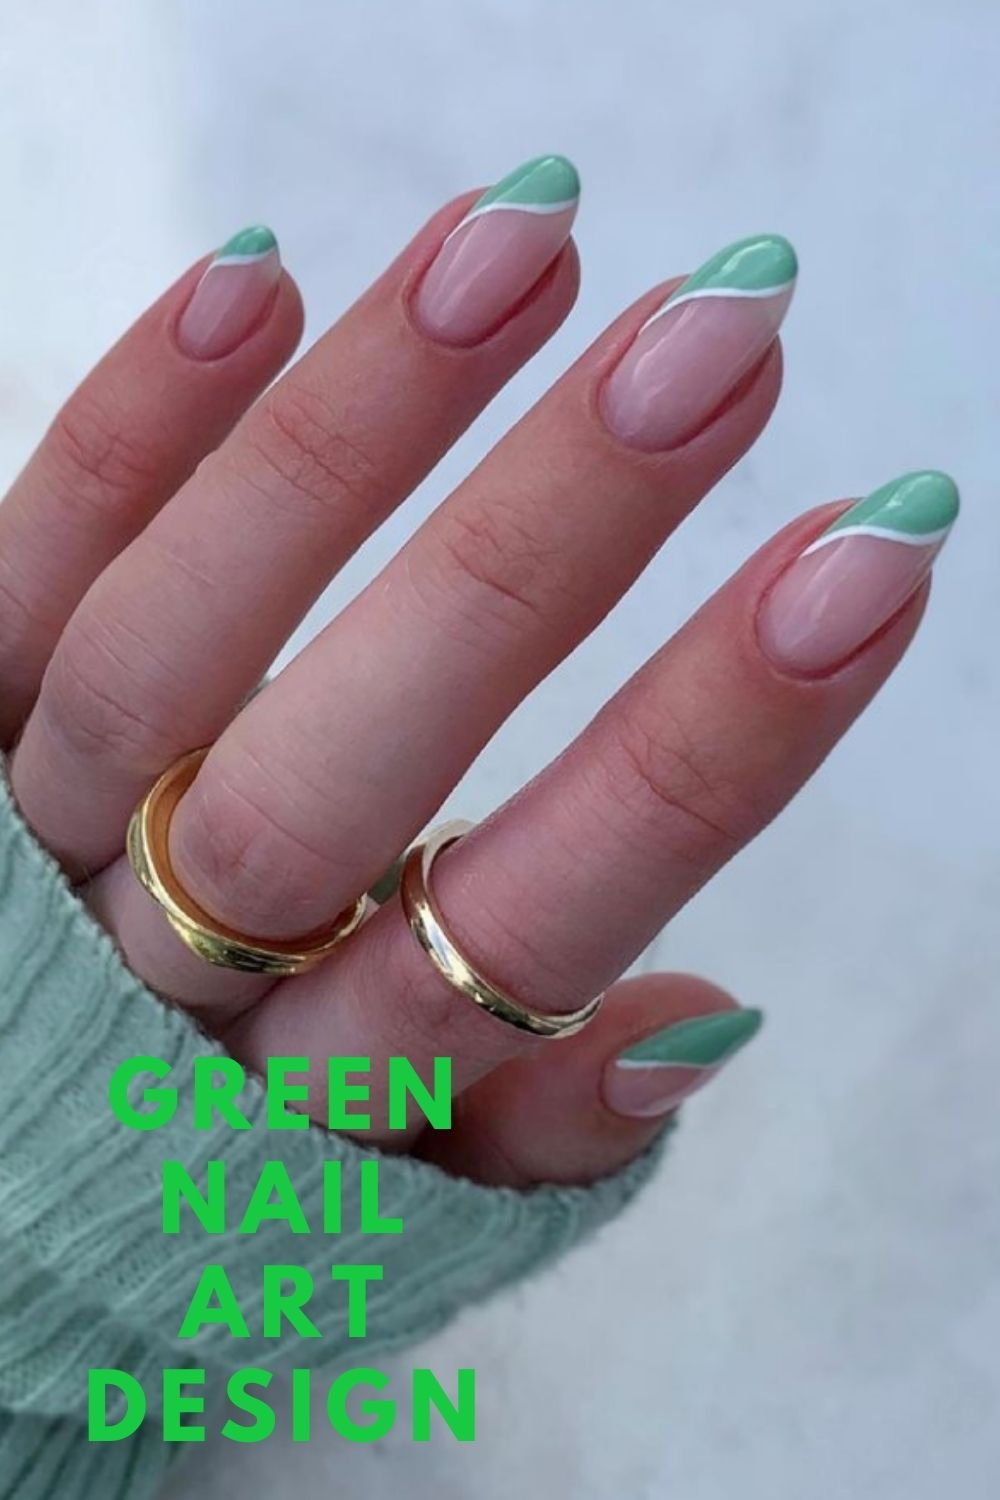 White and green almond nails